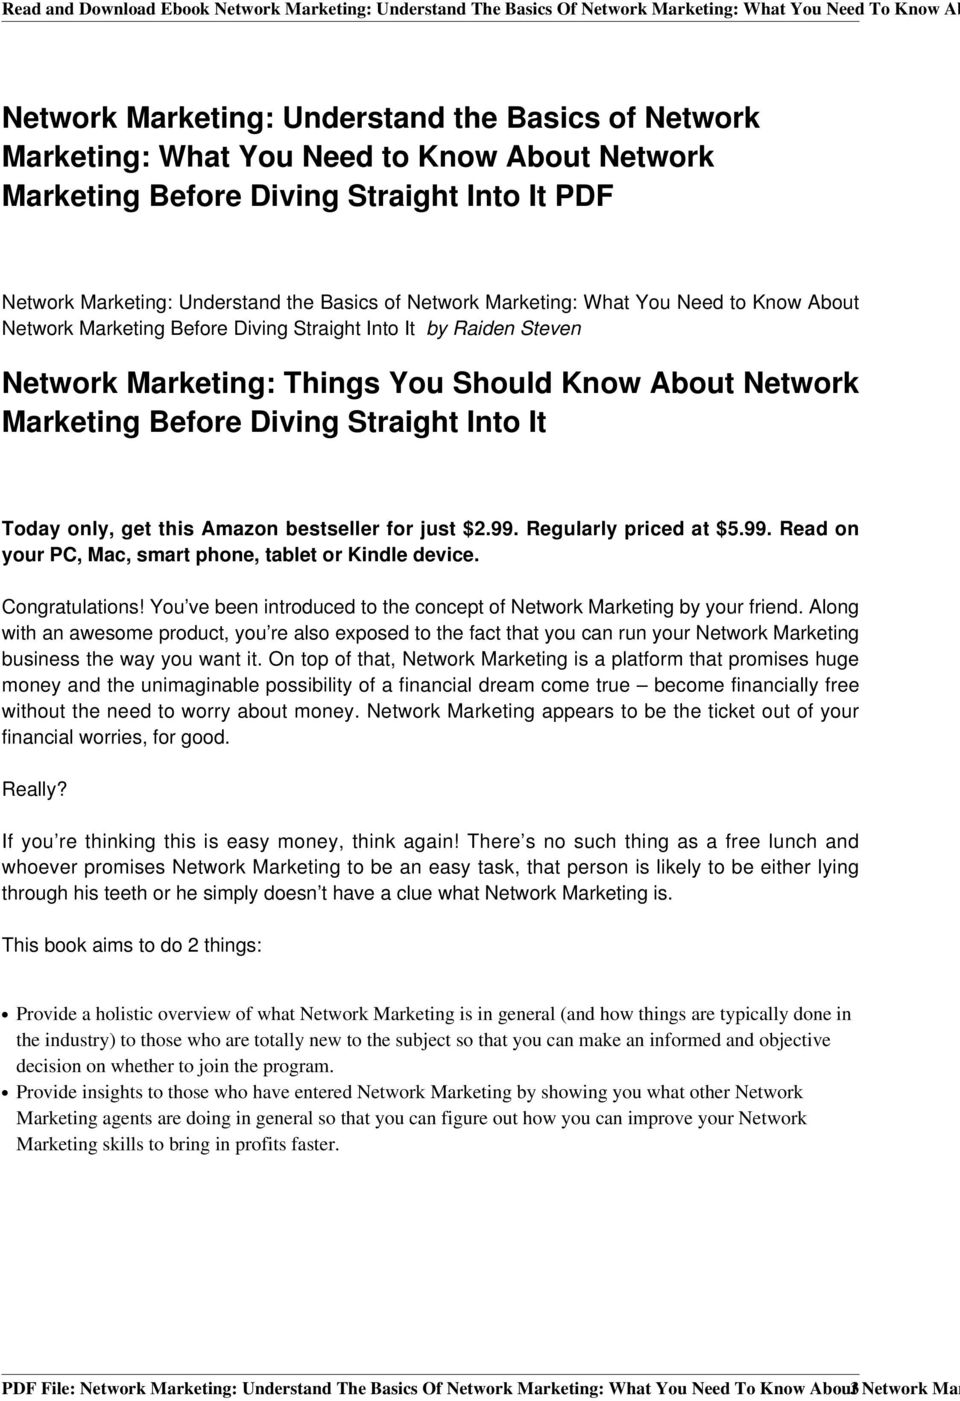 Read and Download Ebook Network Marketing: Understand The